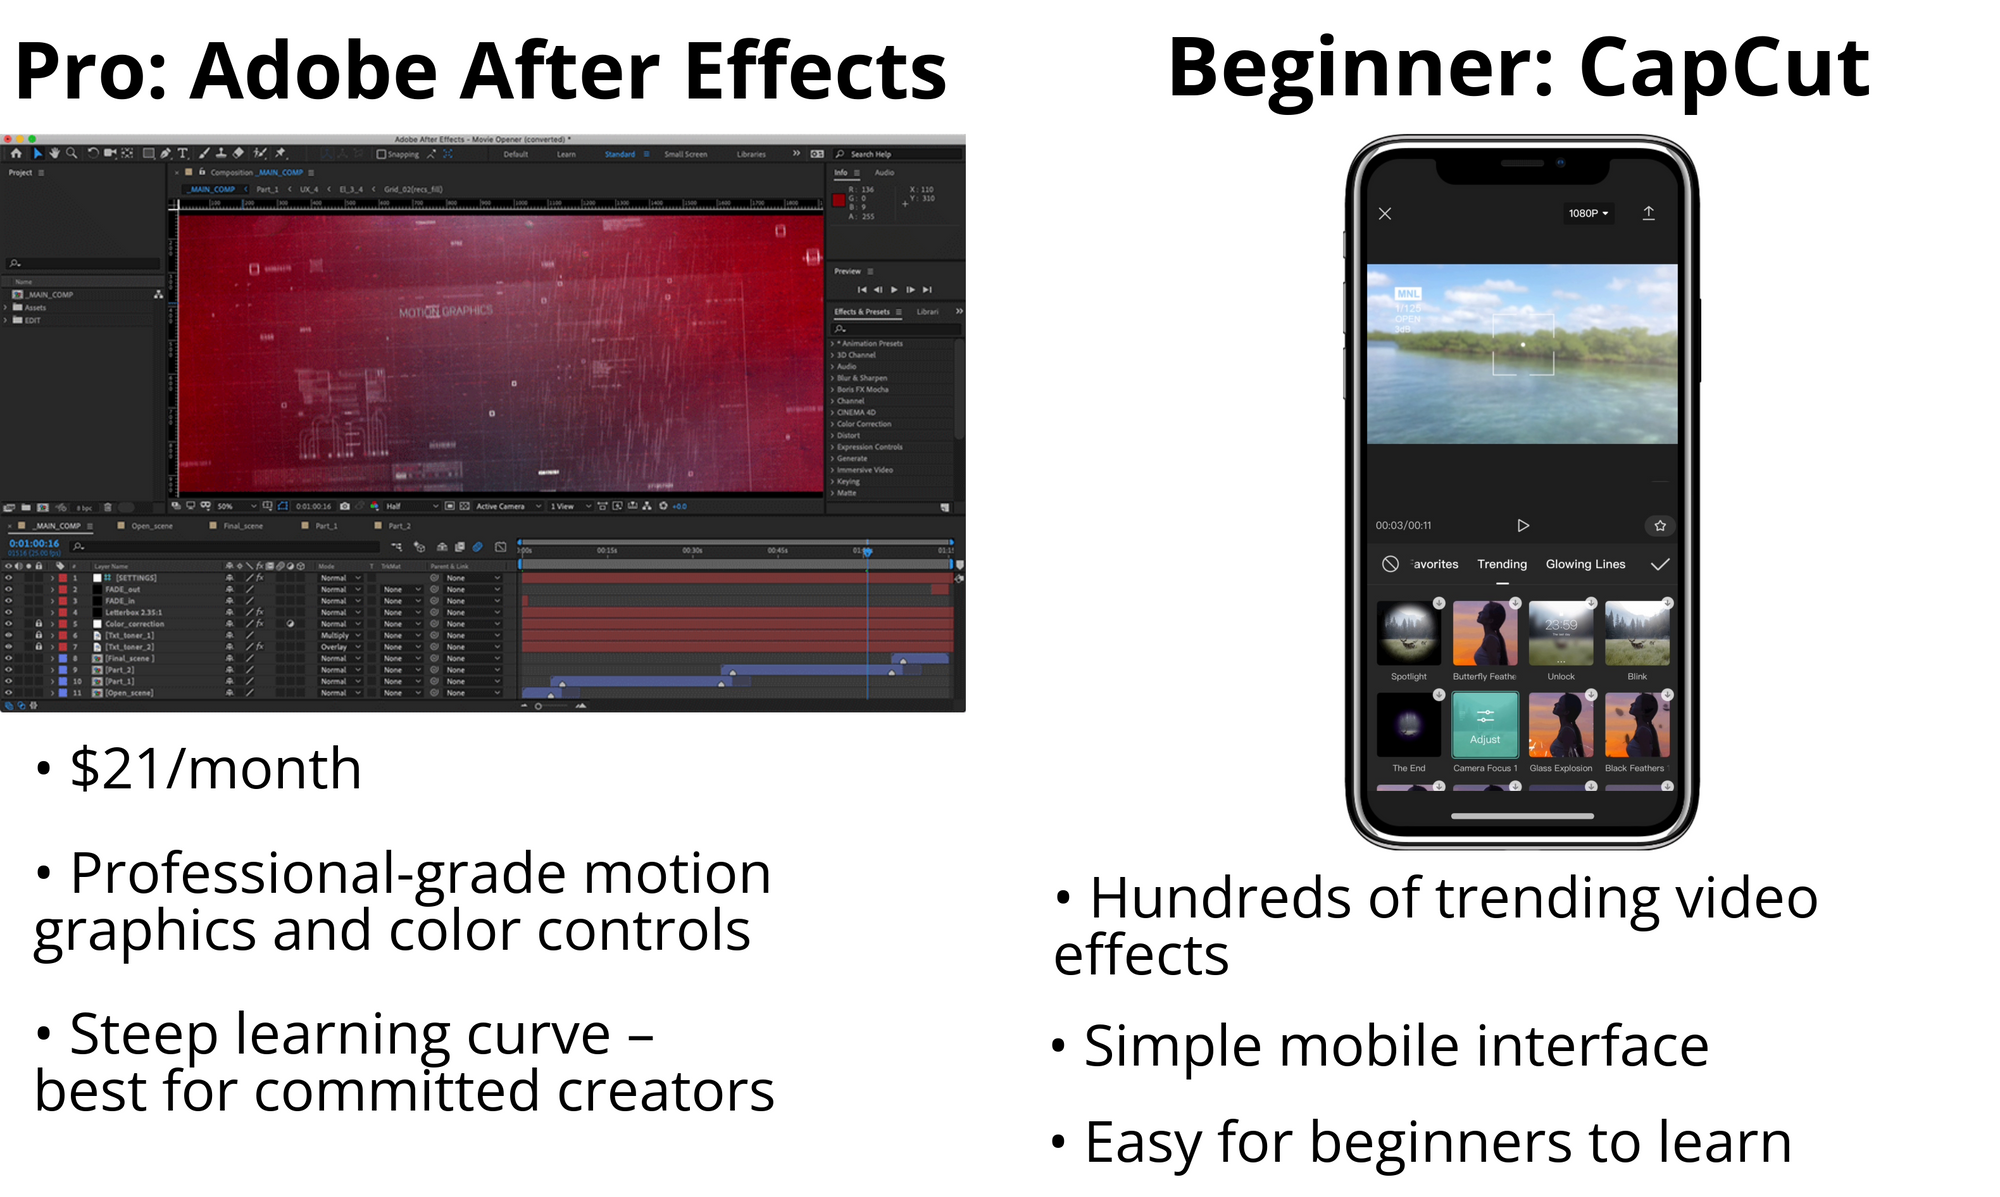 A graphic comparing Adobe After Effects to CapCut.